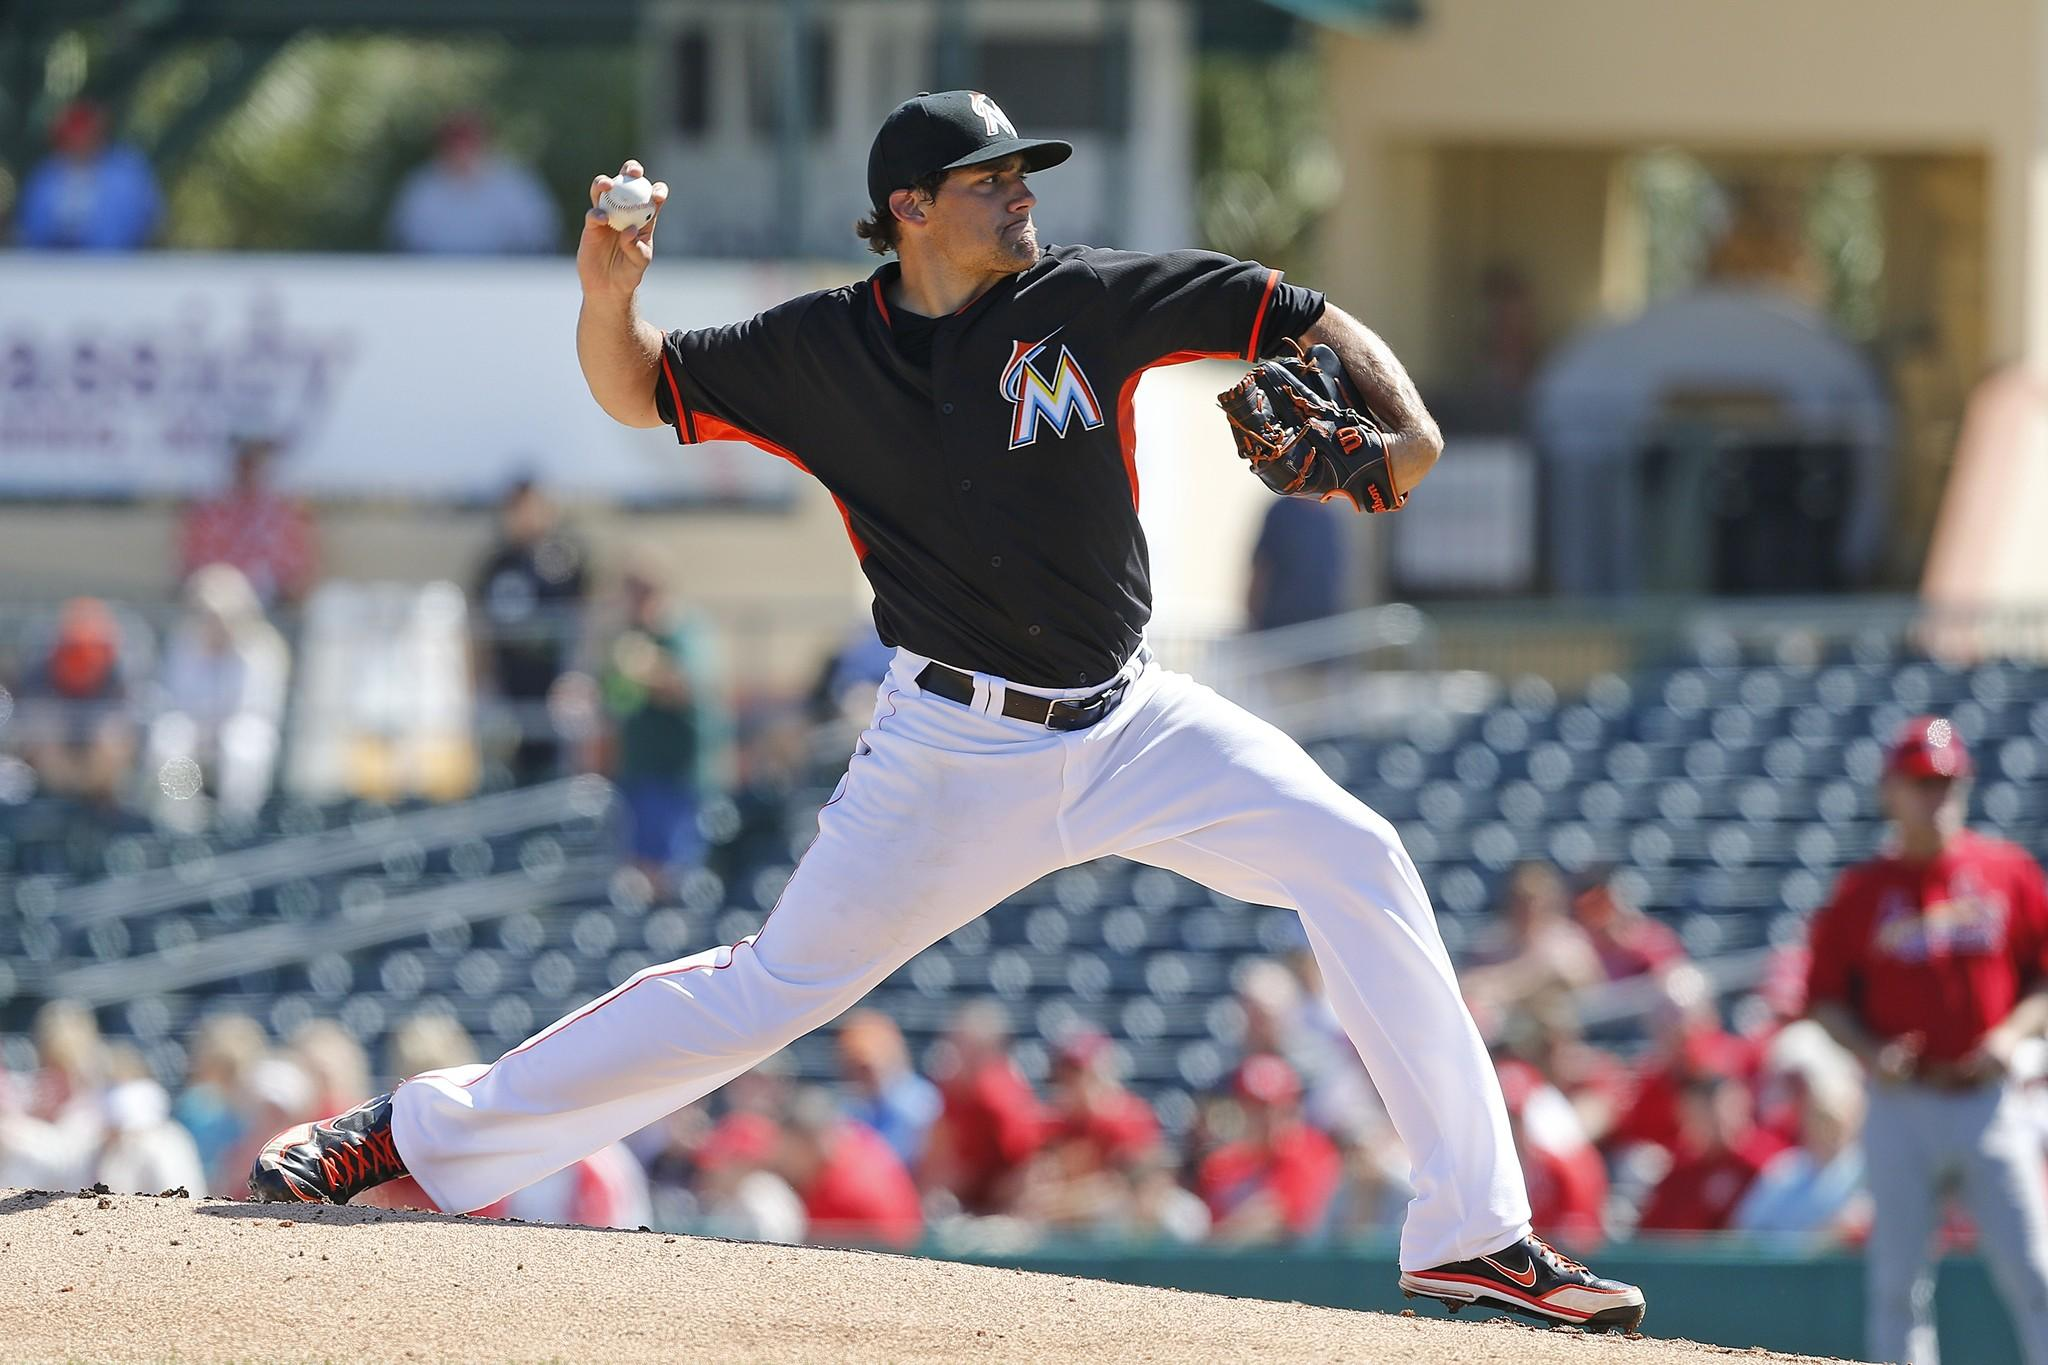 Nathan Eovaldi of the Miami Marlins makes his first Grapefruit League start Saturday at Roger Dean Stadium against the St. Louis Cardinals.